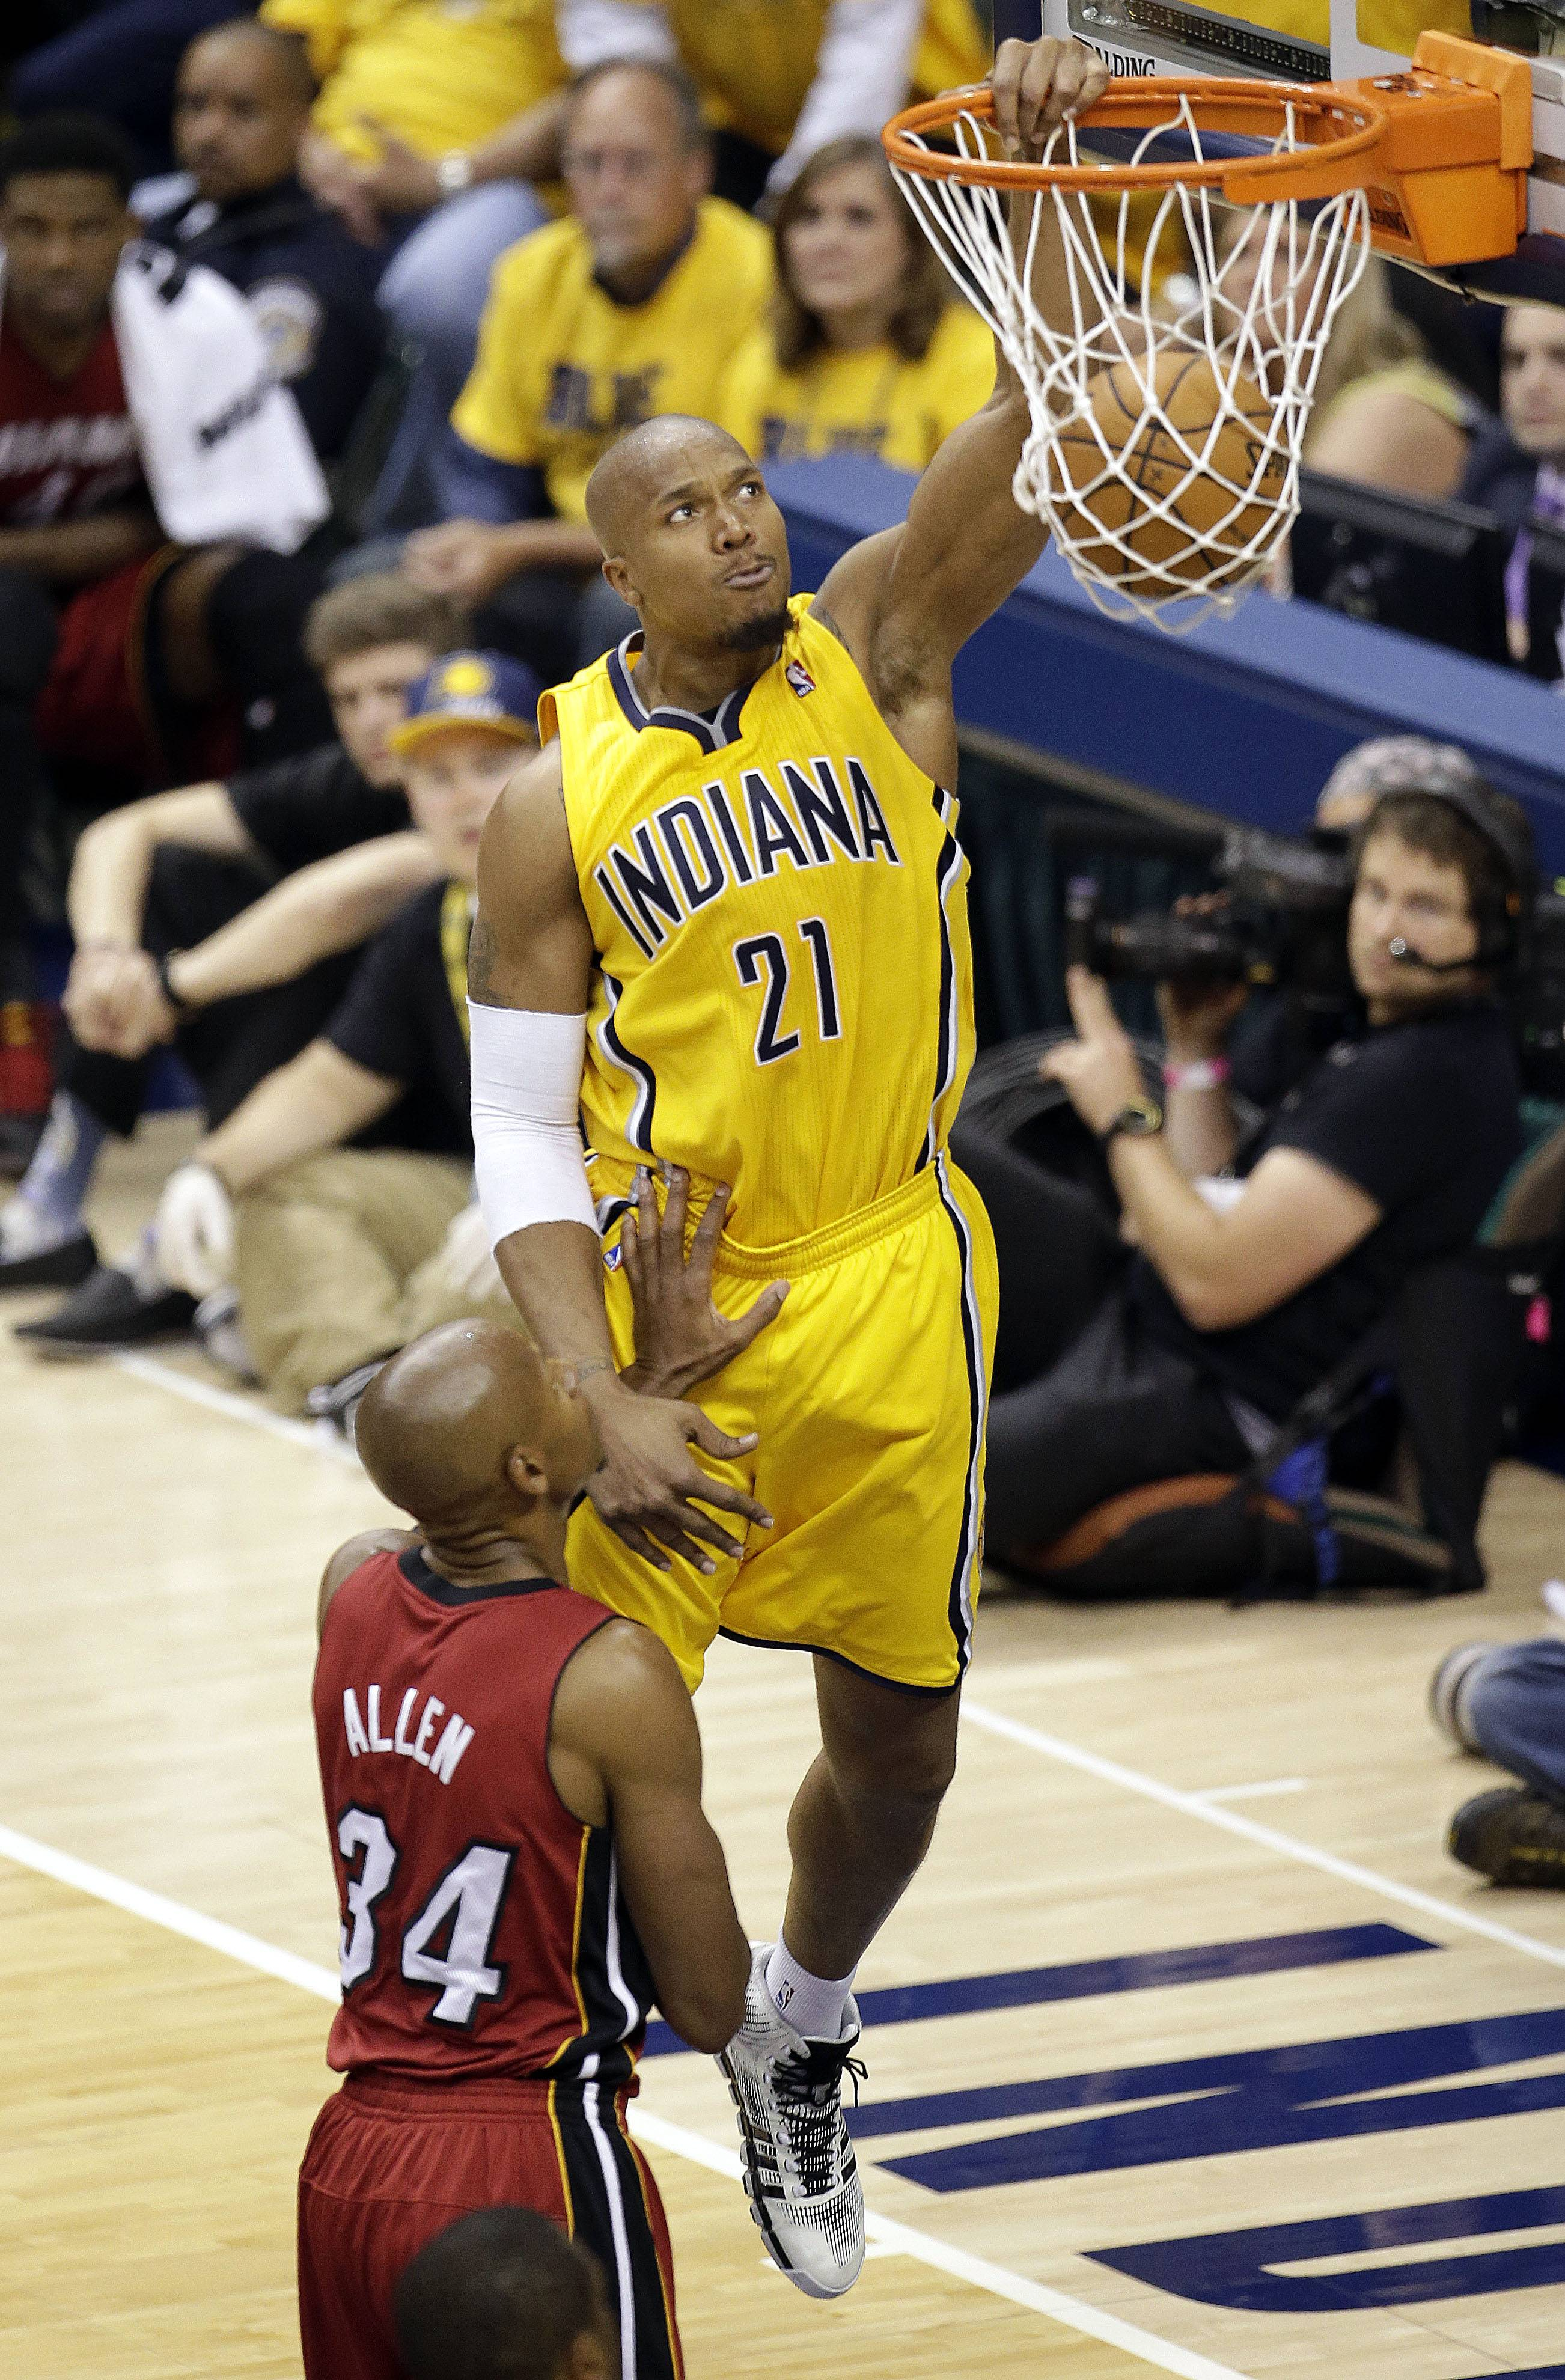 Indiana Pacers forward David West (21) dunks in front of Miami Heat guard Ray Allen (34) during the second half of Game 1 of the Eastern Conference finals NBA basketball playoff series, Sunday, May 18, 2014, in Indianapolis.The pacers won 107-96. West had 19 points.